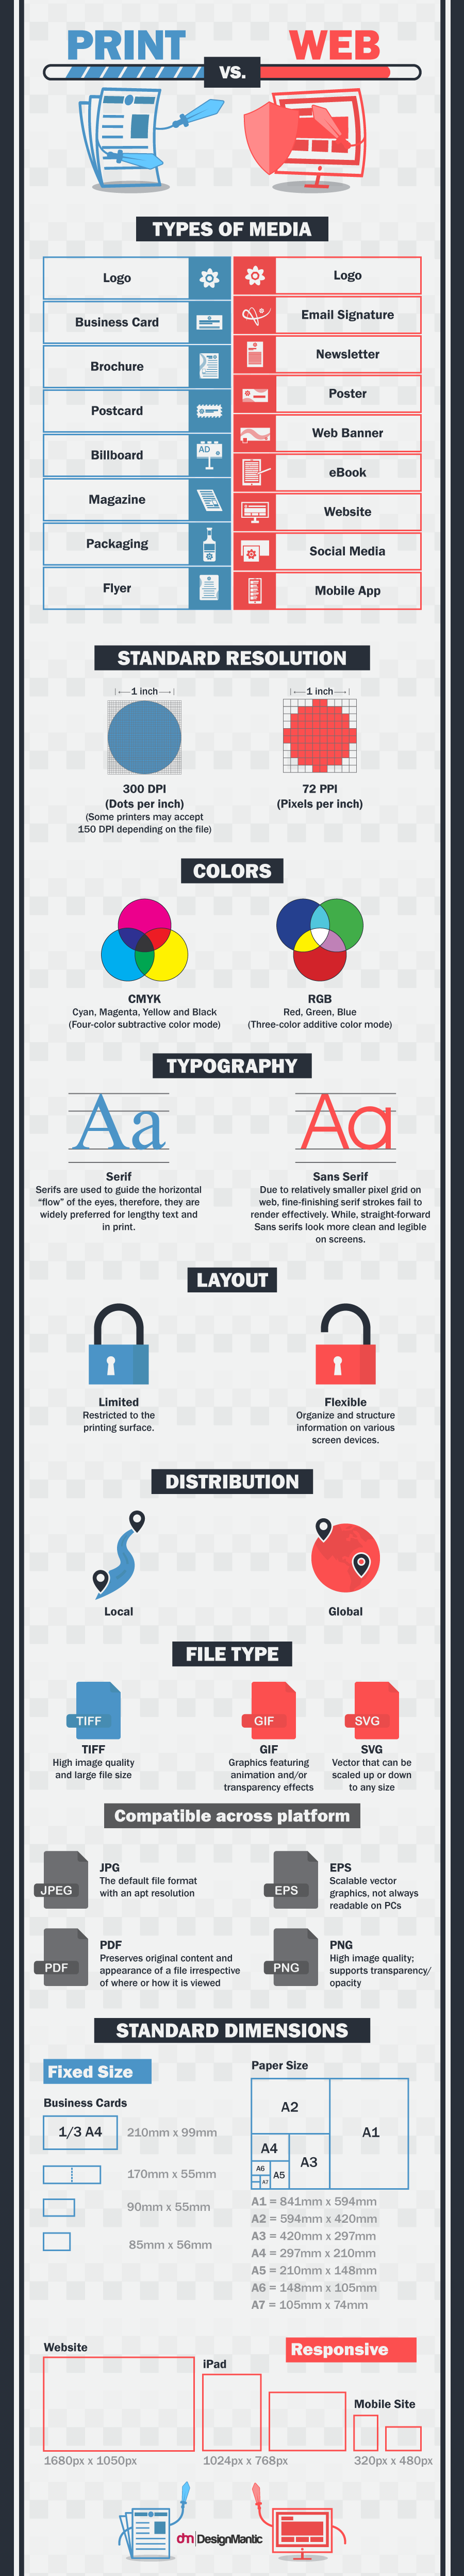 print design vs web design